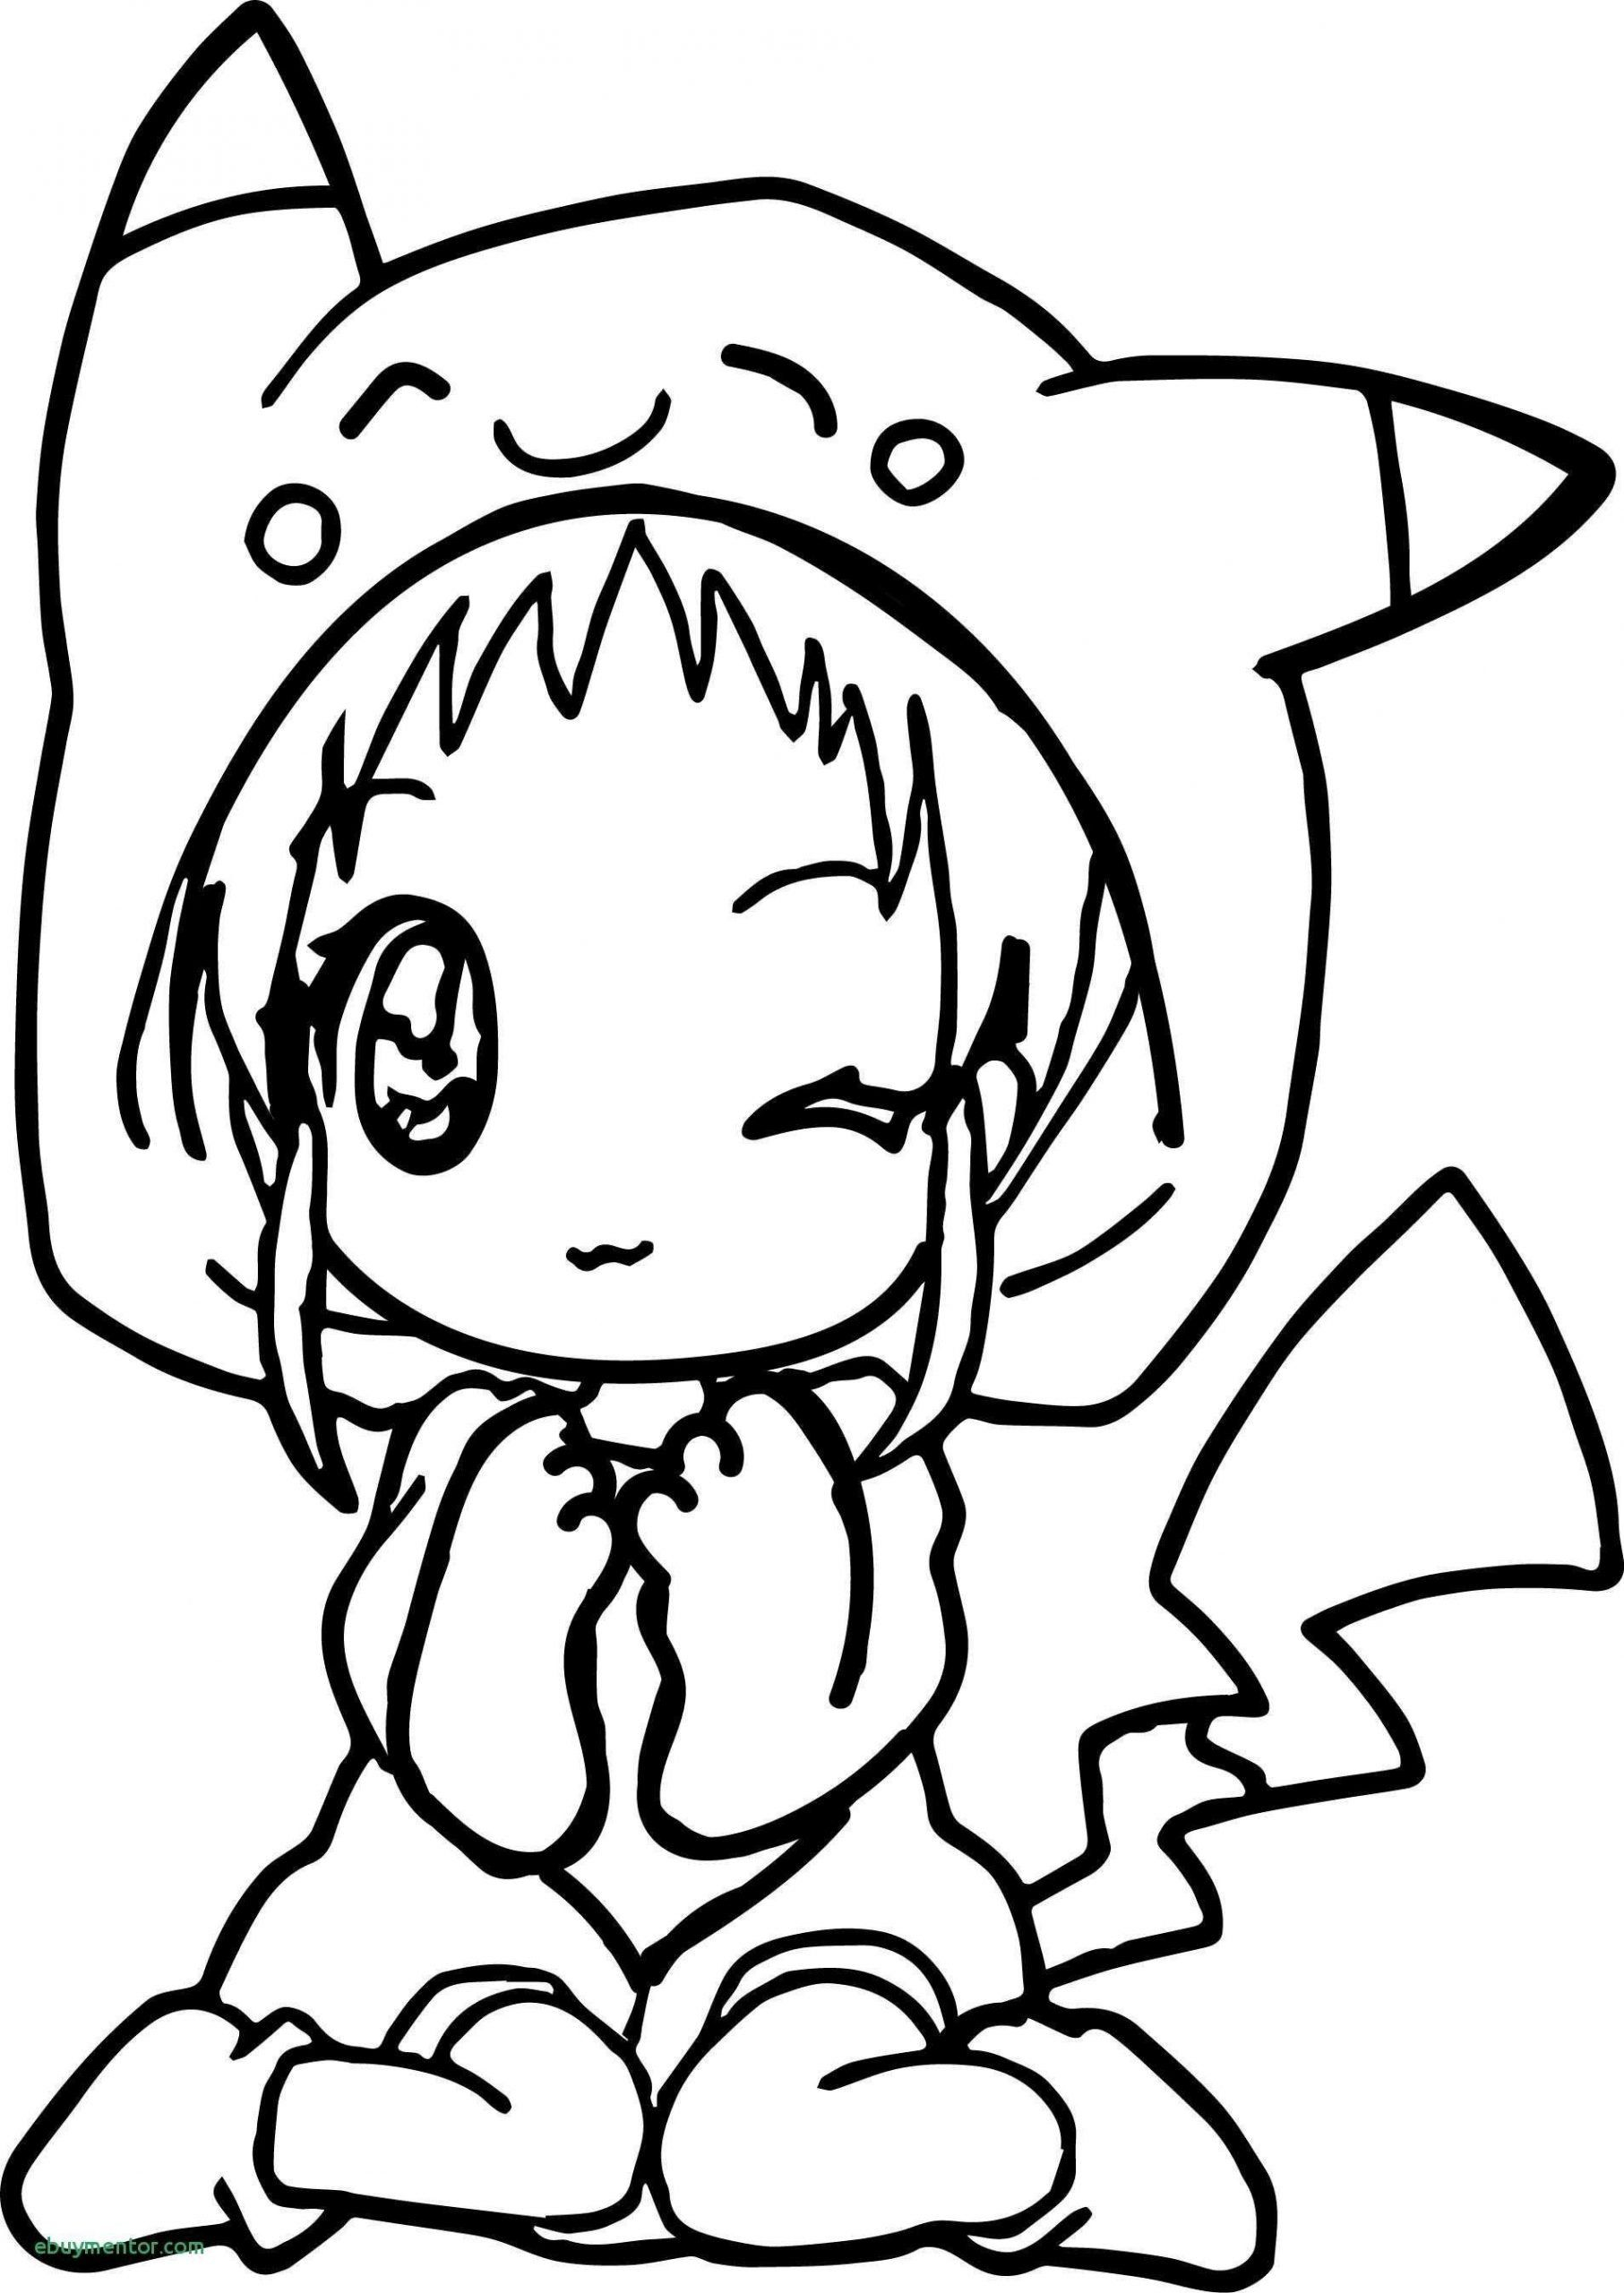 Cute Pikachu Coloring Pages Anime Pikachu Coloring Pages Unicorn Coloring Pages Pikachu Coloring Page Pokemon Coloring Pages